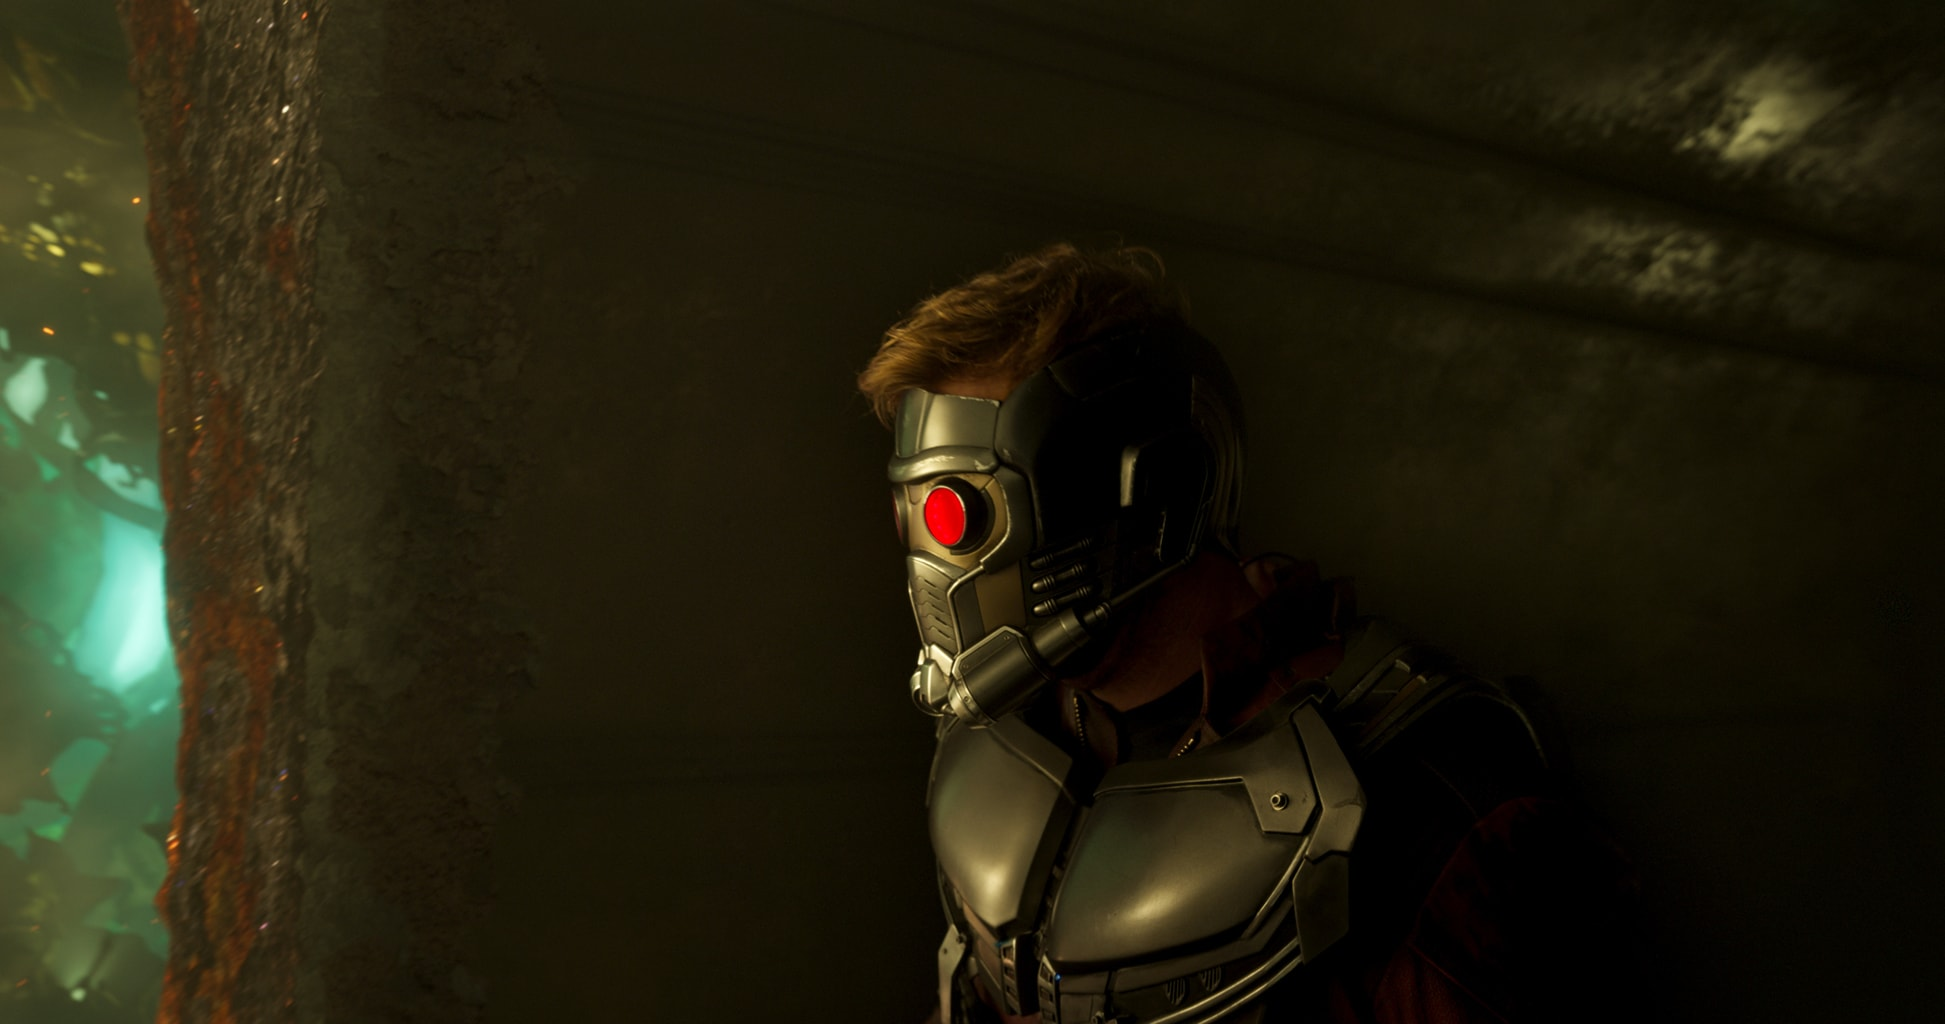 Who's ready to get to know a little about Chris Pratt, Peter Quill, aka Starlord, of Guardians of the Galaxy Vol 2?